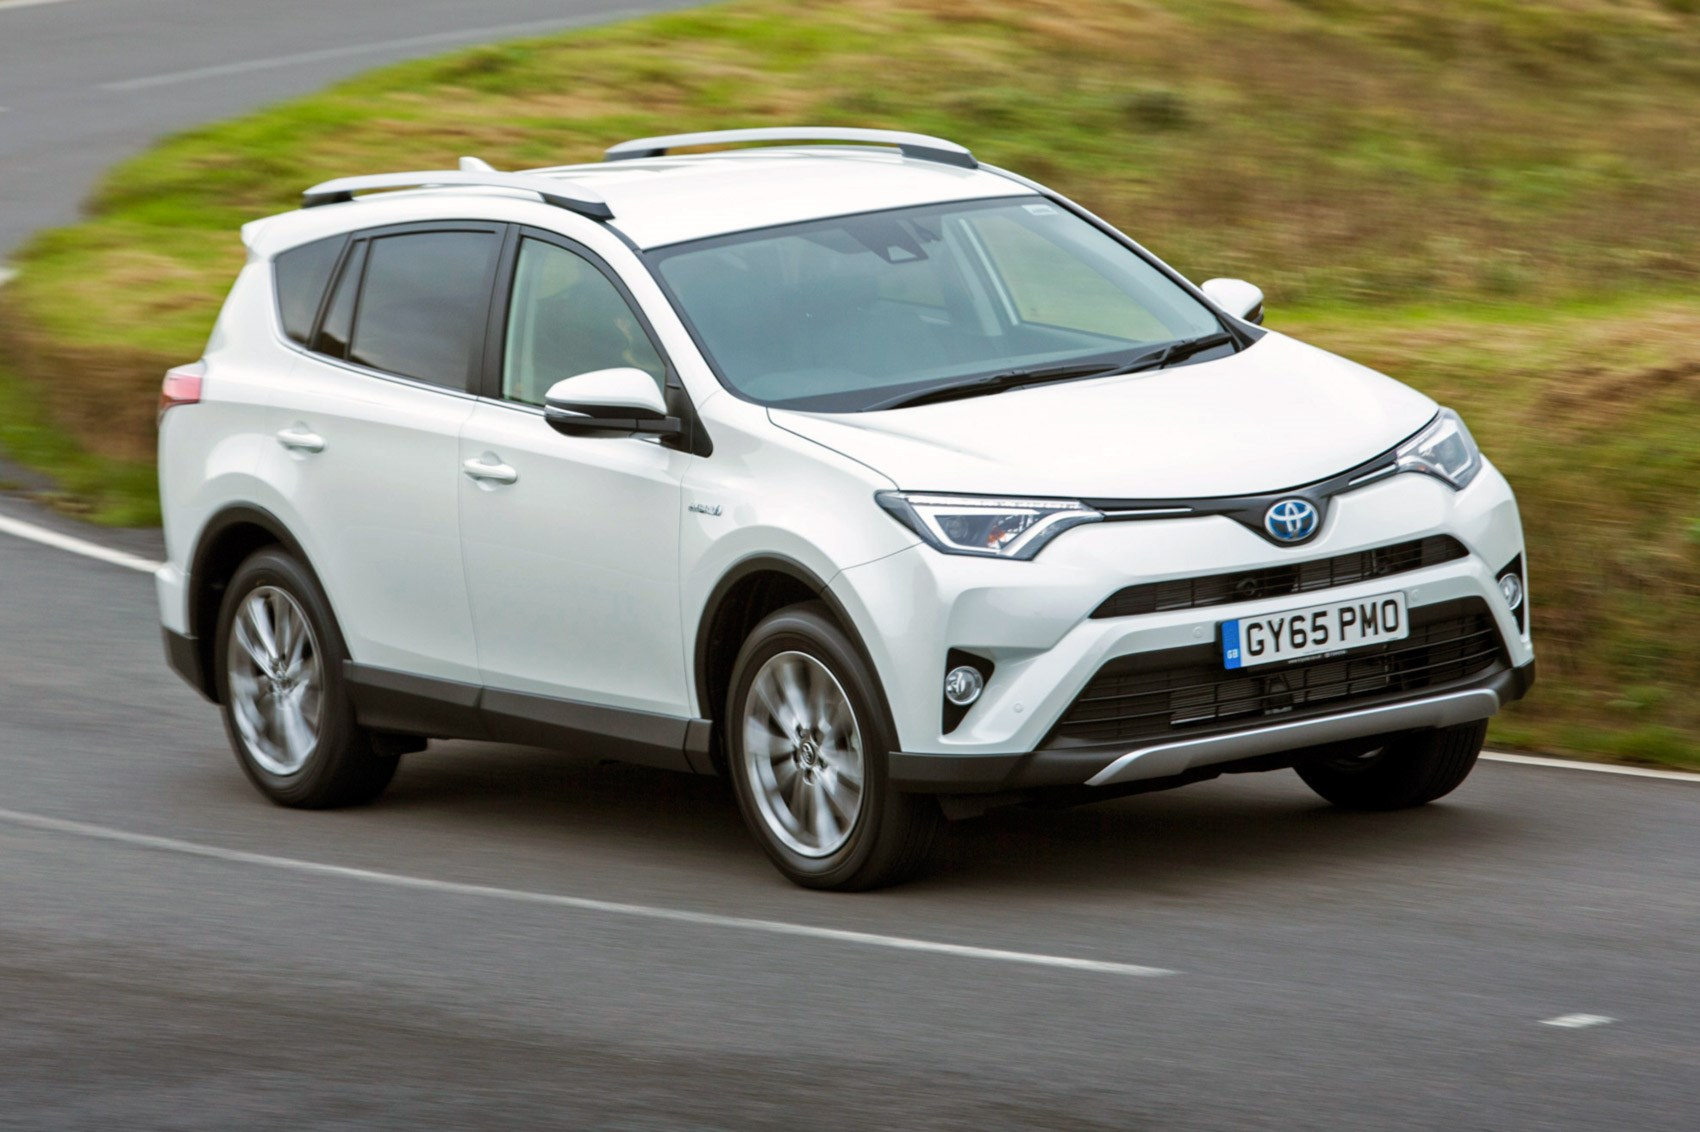 Murray Skoda Plymouth Used Cars Toyota Rav4 Hybrid 2016 Business Edition Plus Review